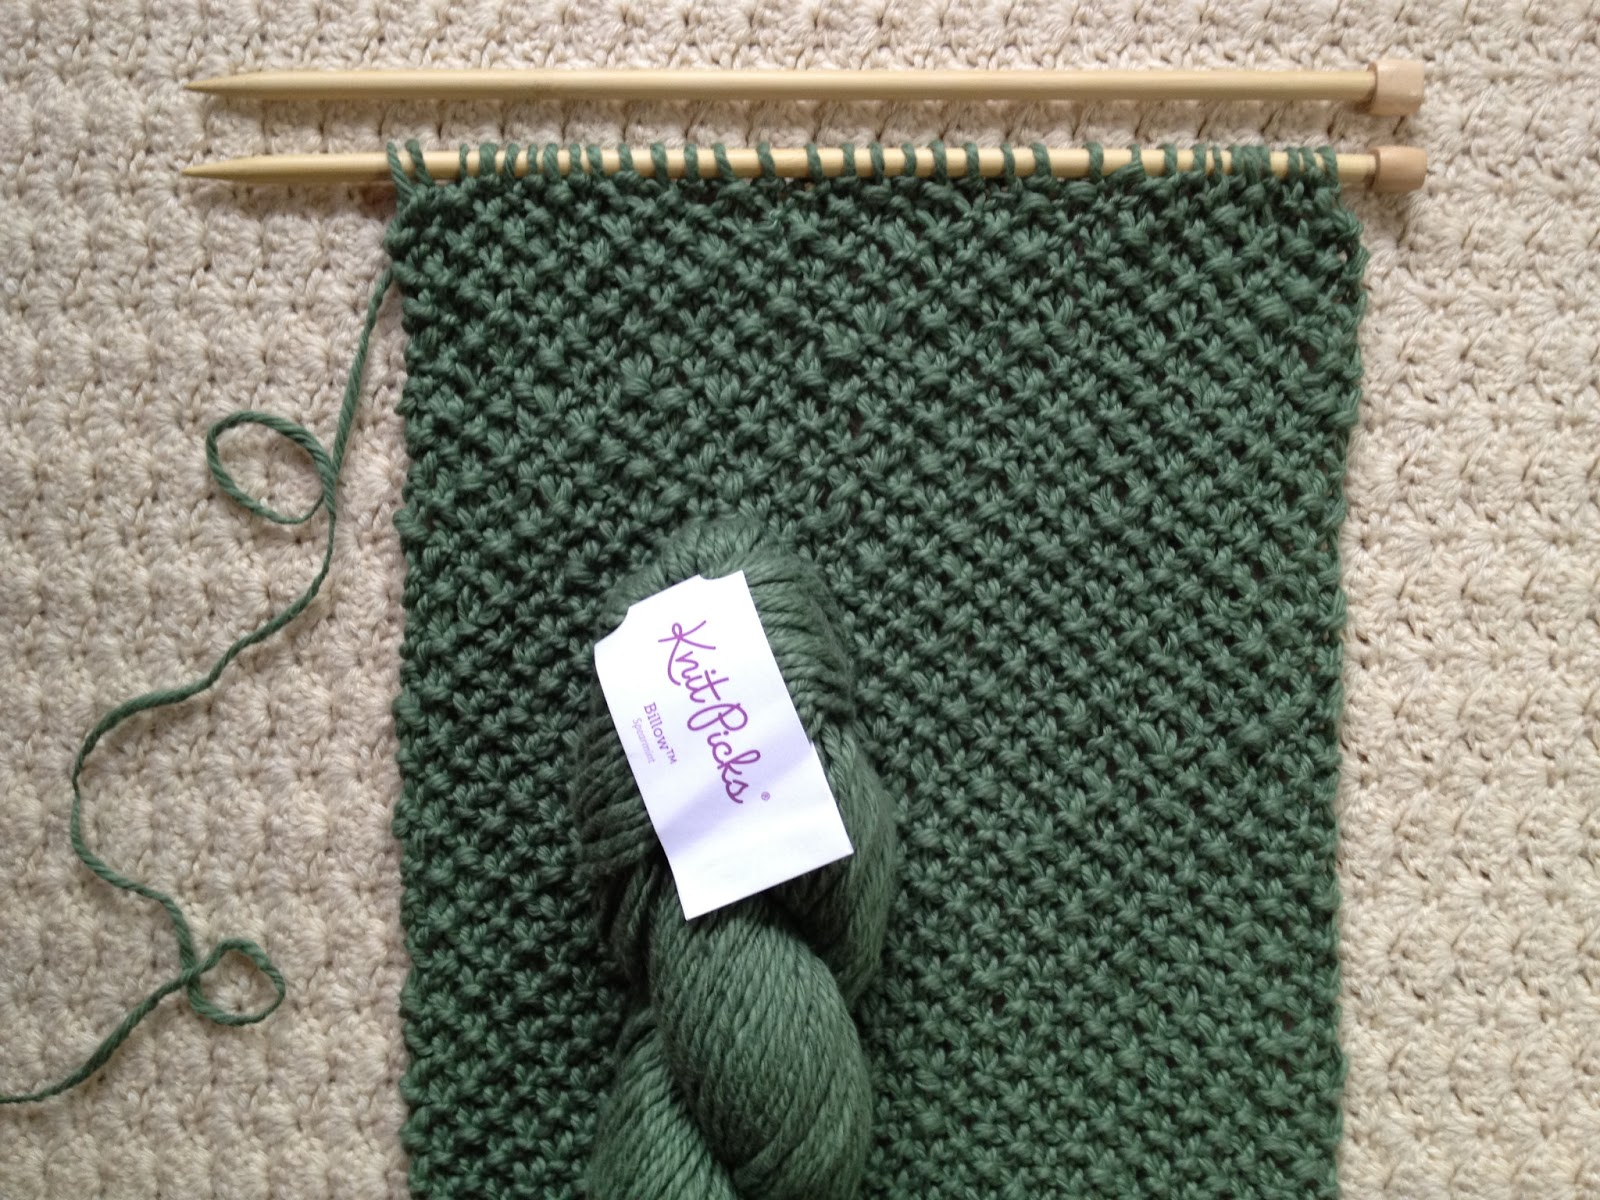 Free Knitting Scarf Patterns For Beginners : tinselmint: FREE INFINITY SCARF PATTERN FOR BEGINNERS